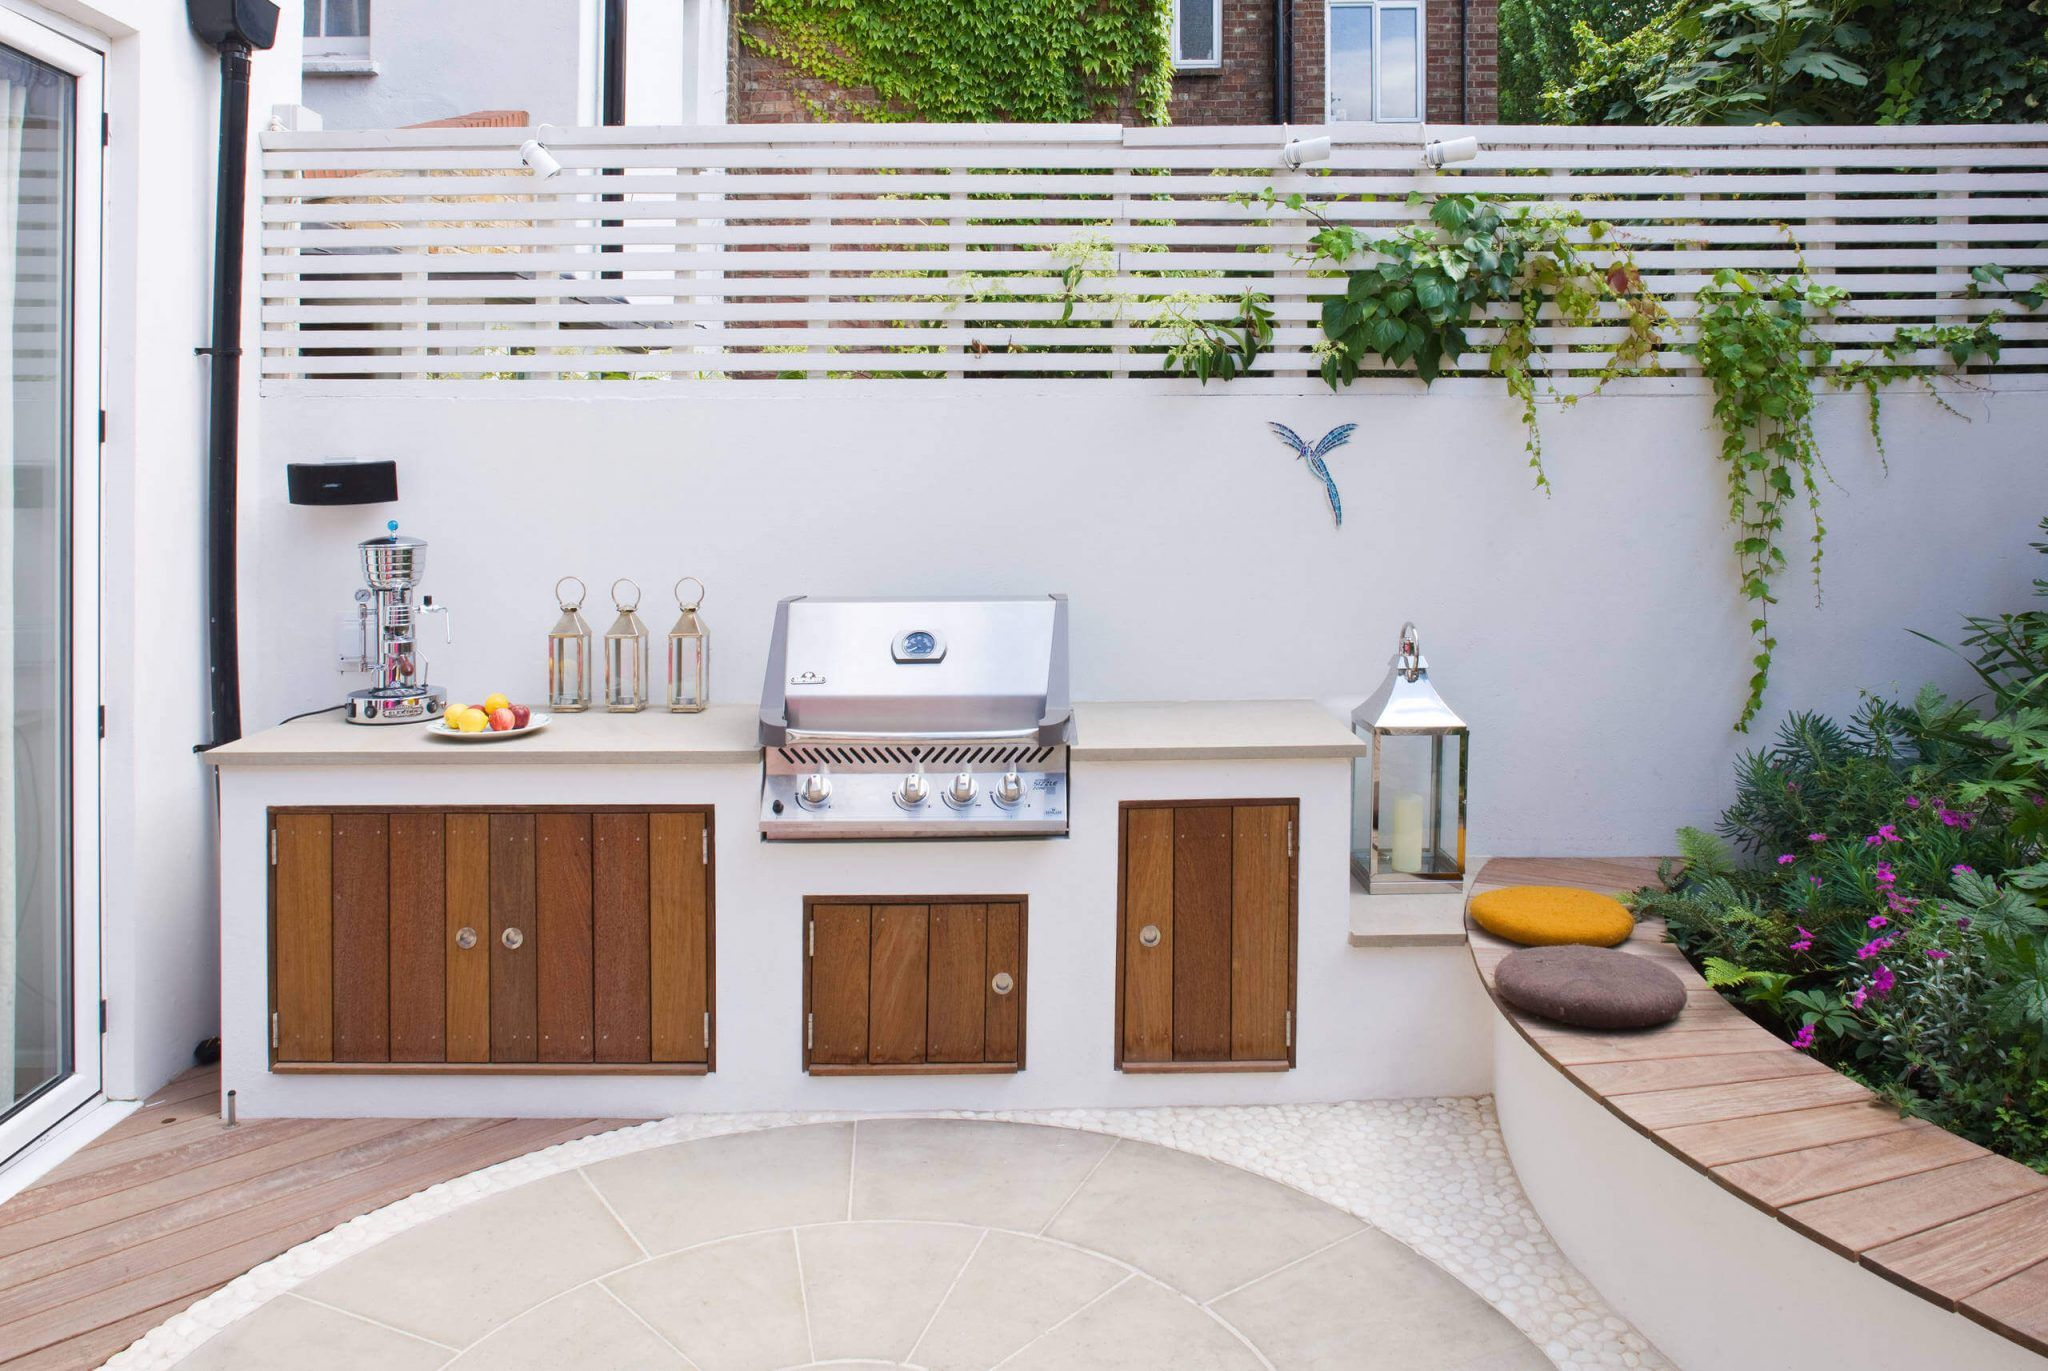 60+ Innovative Outdoor Kitchen Ideas & Design for Your